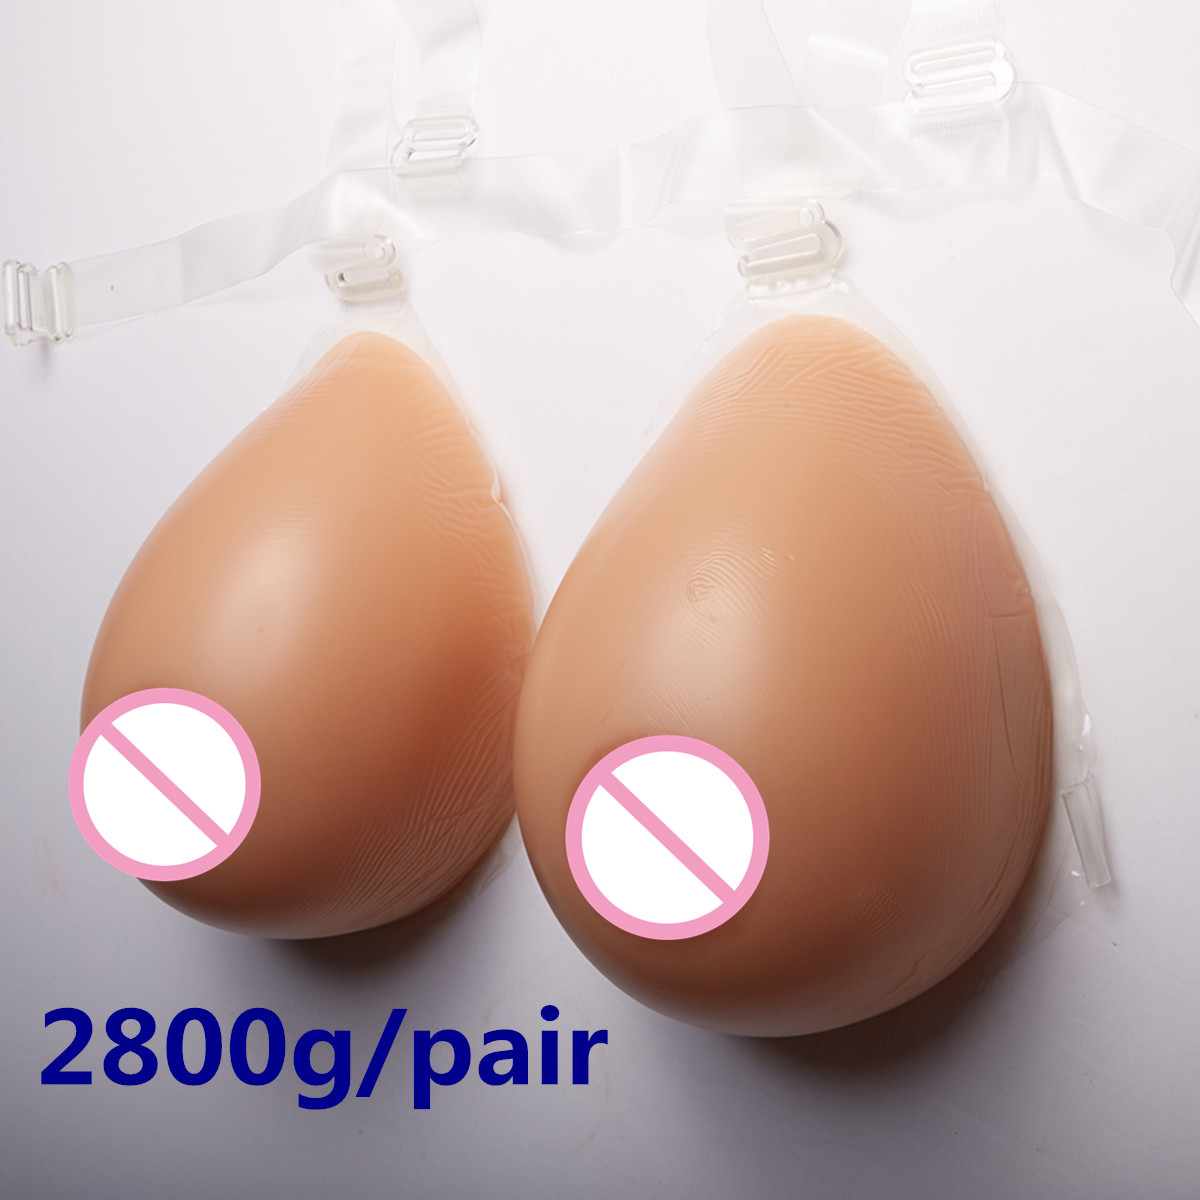 Crossdresser Breast 2800g/pair Silicone Realistic Boobs Fake Breast Full Breast